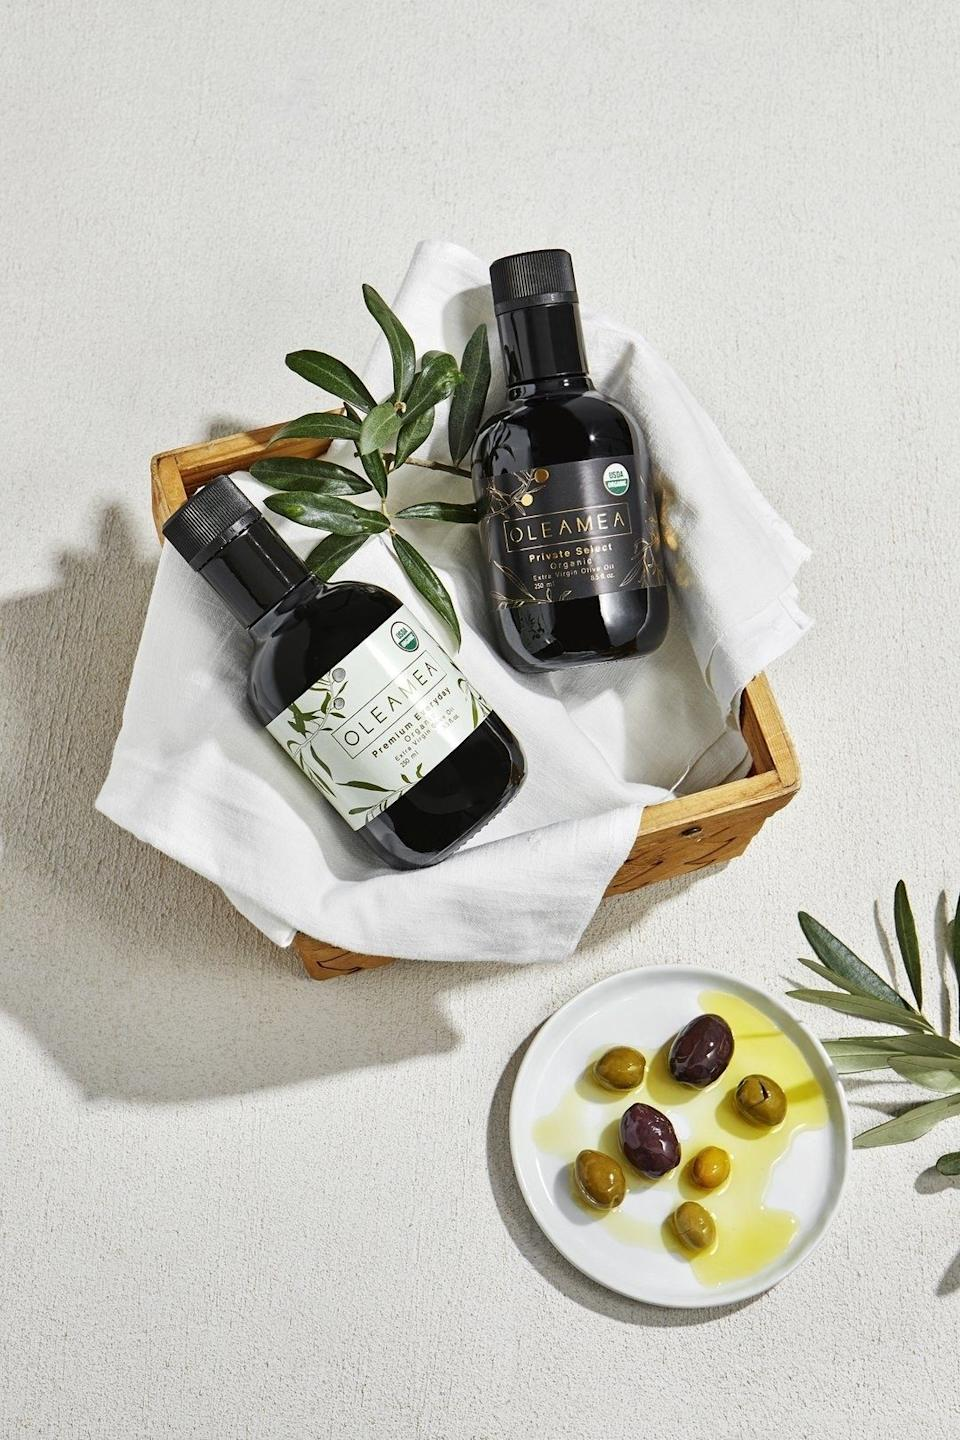 """An everyday basic you can use for cooking and baking, as well as for dipping and finishing. The better your ingredients, the better your results.<br /><br /><strong>Promising review:</strong>""""This olive oil is wonderful. I have used it every day since it arrived on tomatoes and mozzarella, Roasted Broccoli rabe. salads and more. I will be buying more."""" — 1624<br /><br /><strong>Get the two-pack from Oleamea for<a href=""""https://go.skimresources.com?id=38395X987171&xs=1&url=https%3A%2F%2Fwww.oleamea.com%2Fcollections%2Fshop-all%2Fproducts%2Fgift-pack&xcust=HPIncompleteKitchen60882f69e4b0b9042d8addee"""" target=""""_blank"""" rel=""""noopener noreferrer"""">$20.99</a>or from Amazon for<a href=""""https://www.amazon.com/dp/B088MM9CRY?tag=huffpost-bfsyndication-20&ascsubtag=5883859%2C14%2C54%2Cd%2C0%2C0%2C0%2C962%3A1%3B901%3A2%3B900%3A2%3B974%3A3%3B975%3A2%3B982%3A2%2C16473637%2C0"""" target=""""_blank"""" rel=""""noopener noreferrer"""">$20.99</a>(bottles can also be bought individually on both sites).</strong>"""